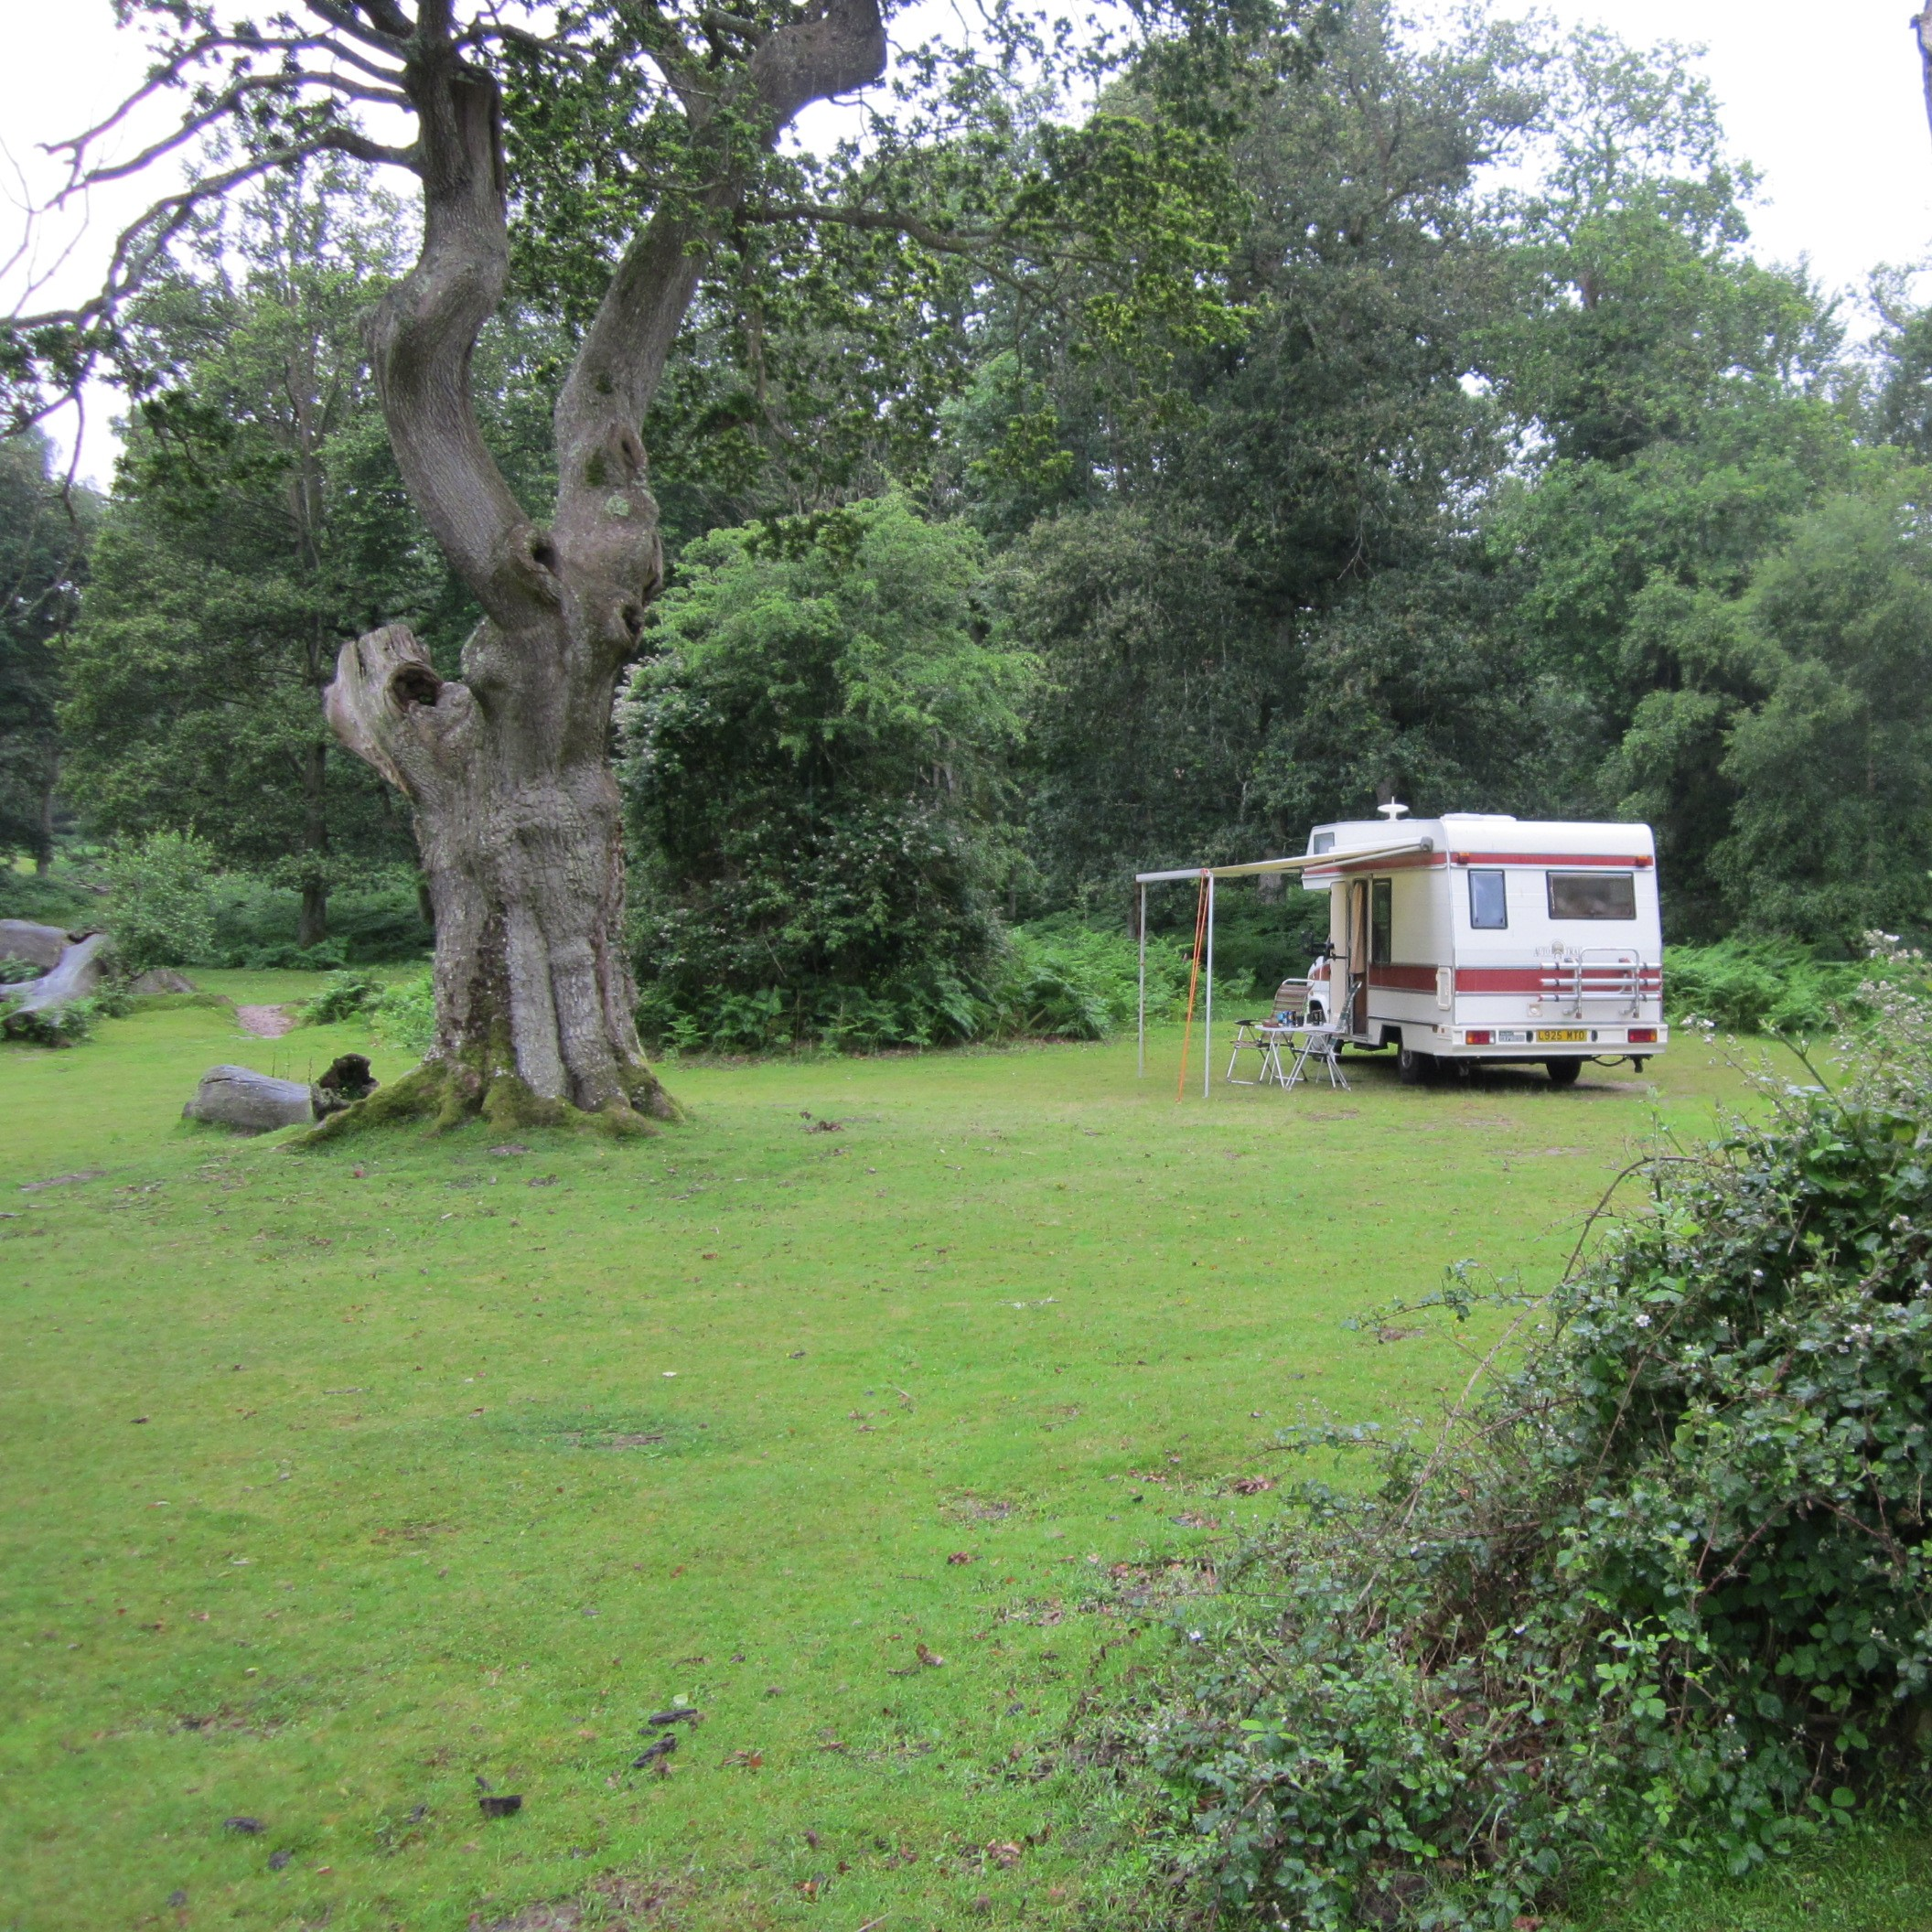 Our Old Bus - in the New Forest